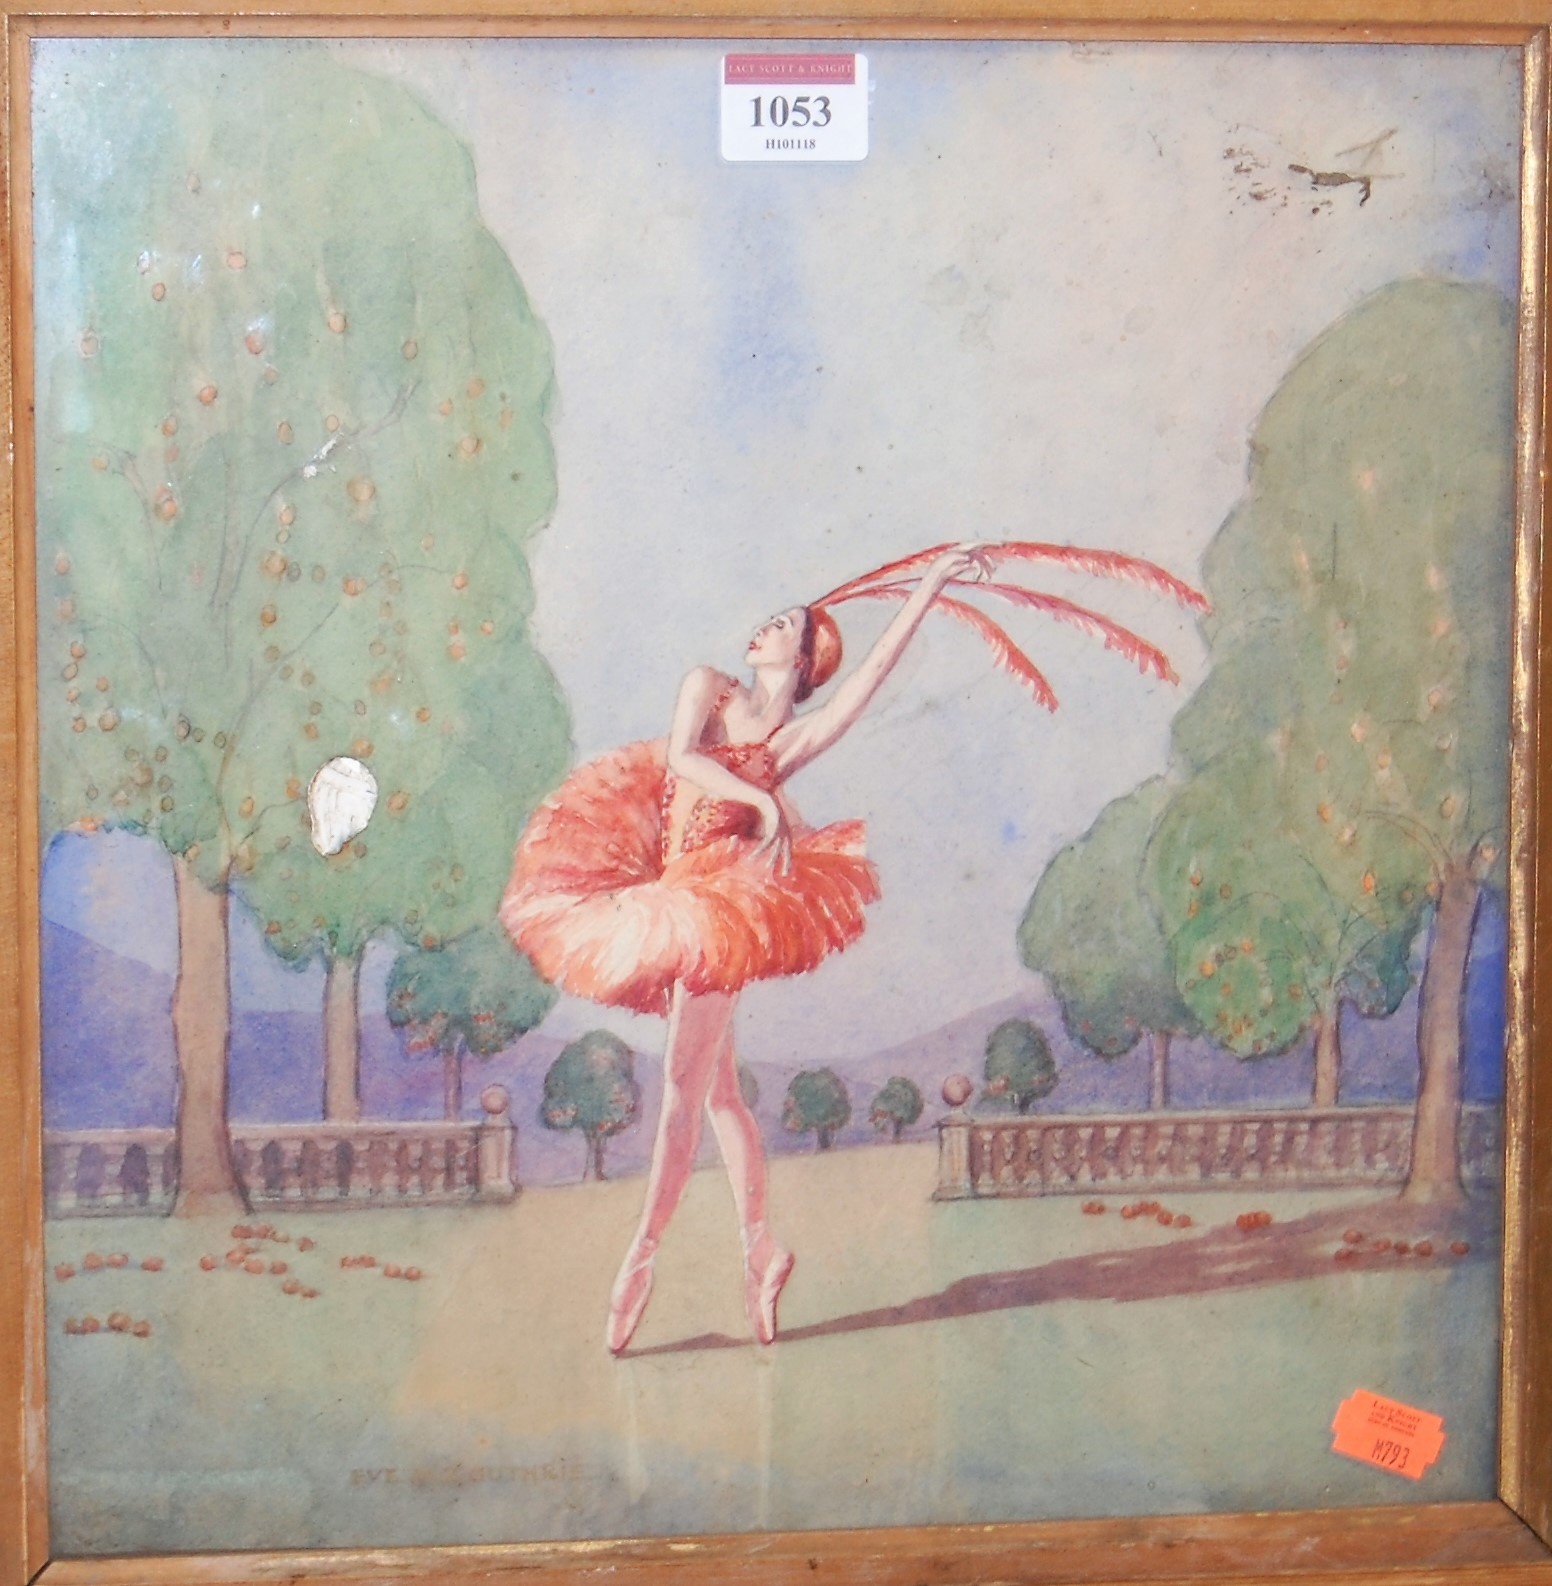 Lot 1053 - Eve M.S. Guthrie - The Ballerina, watercolour, signed lower left, 31 x 31cm